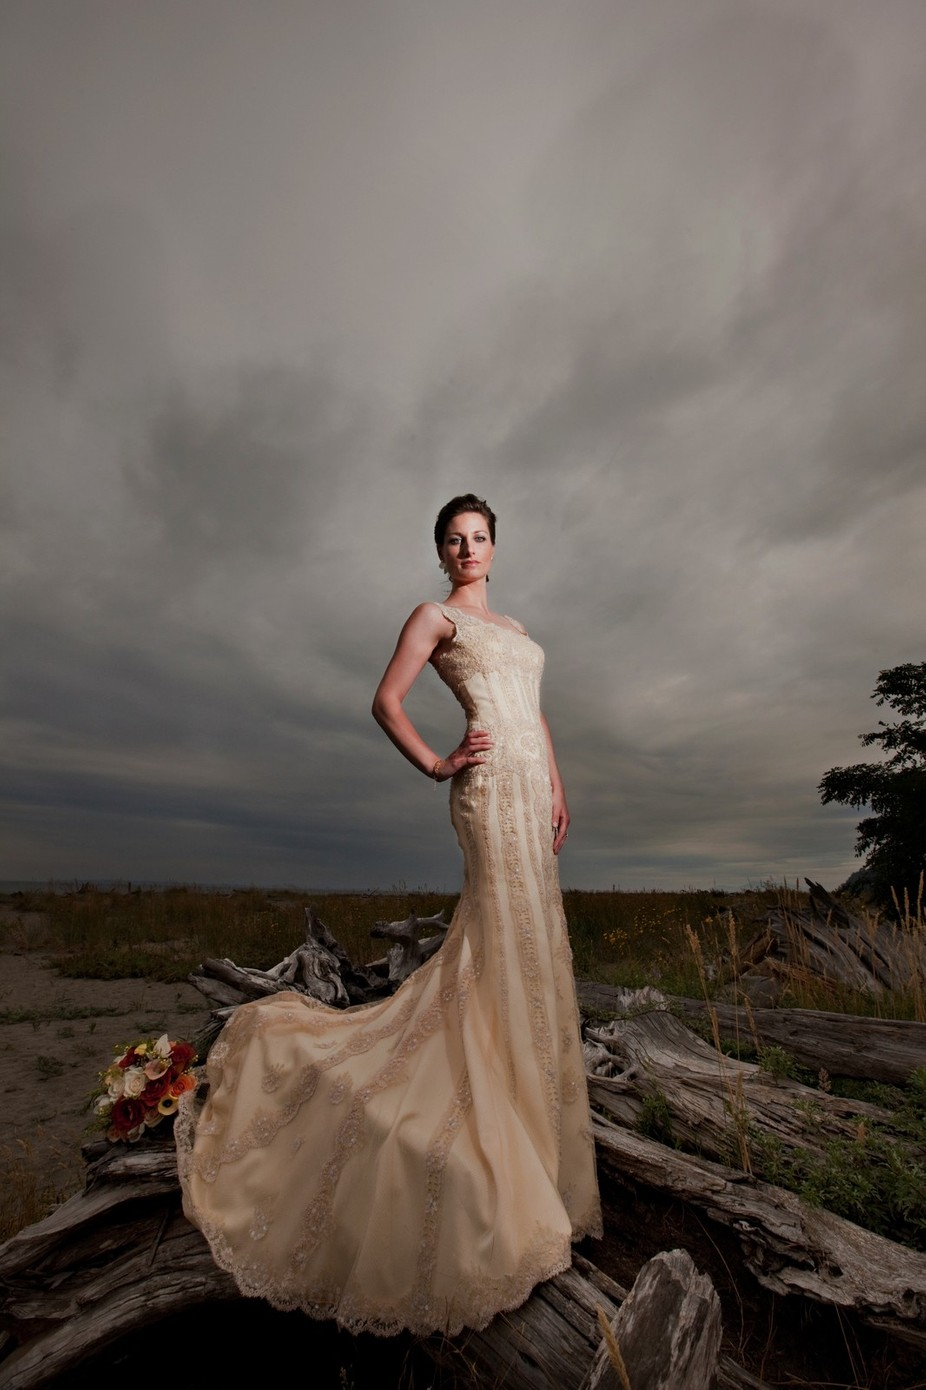 sarah by leannescherp - Weddings And Fashion Photo Contest